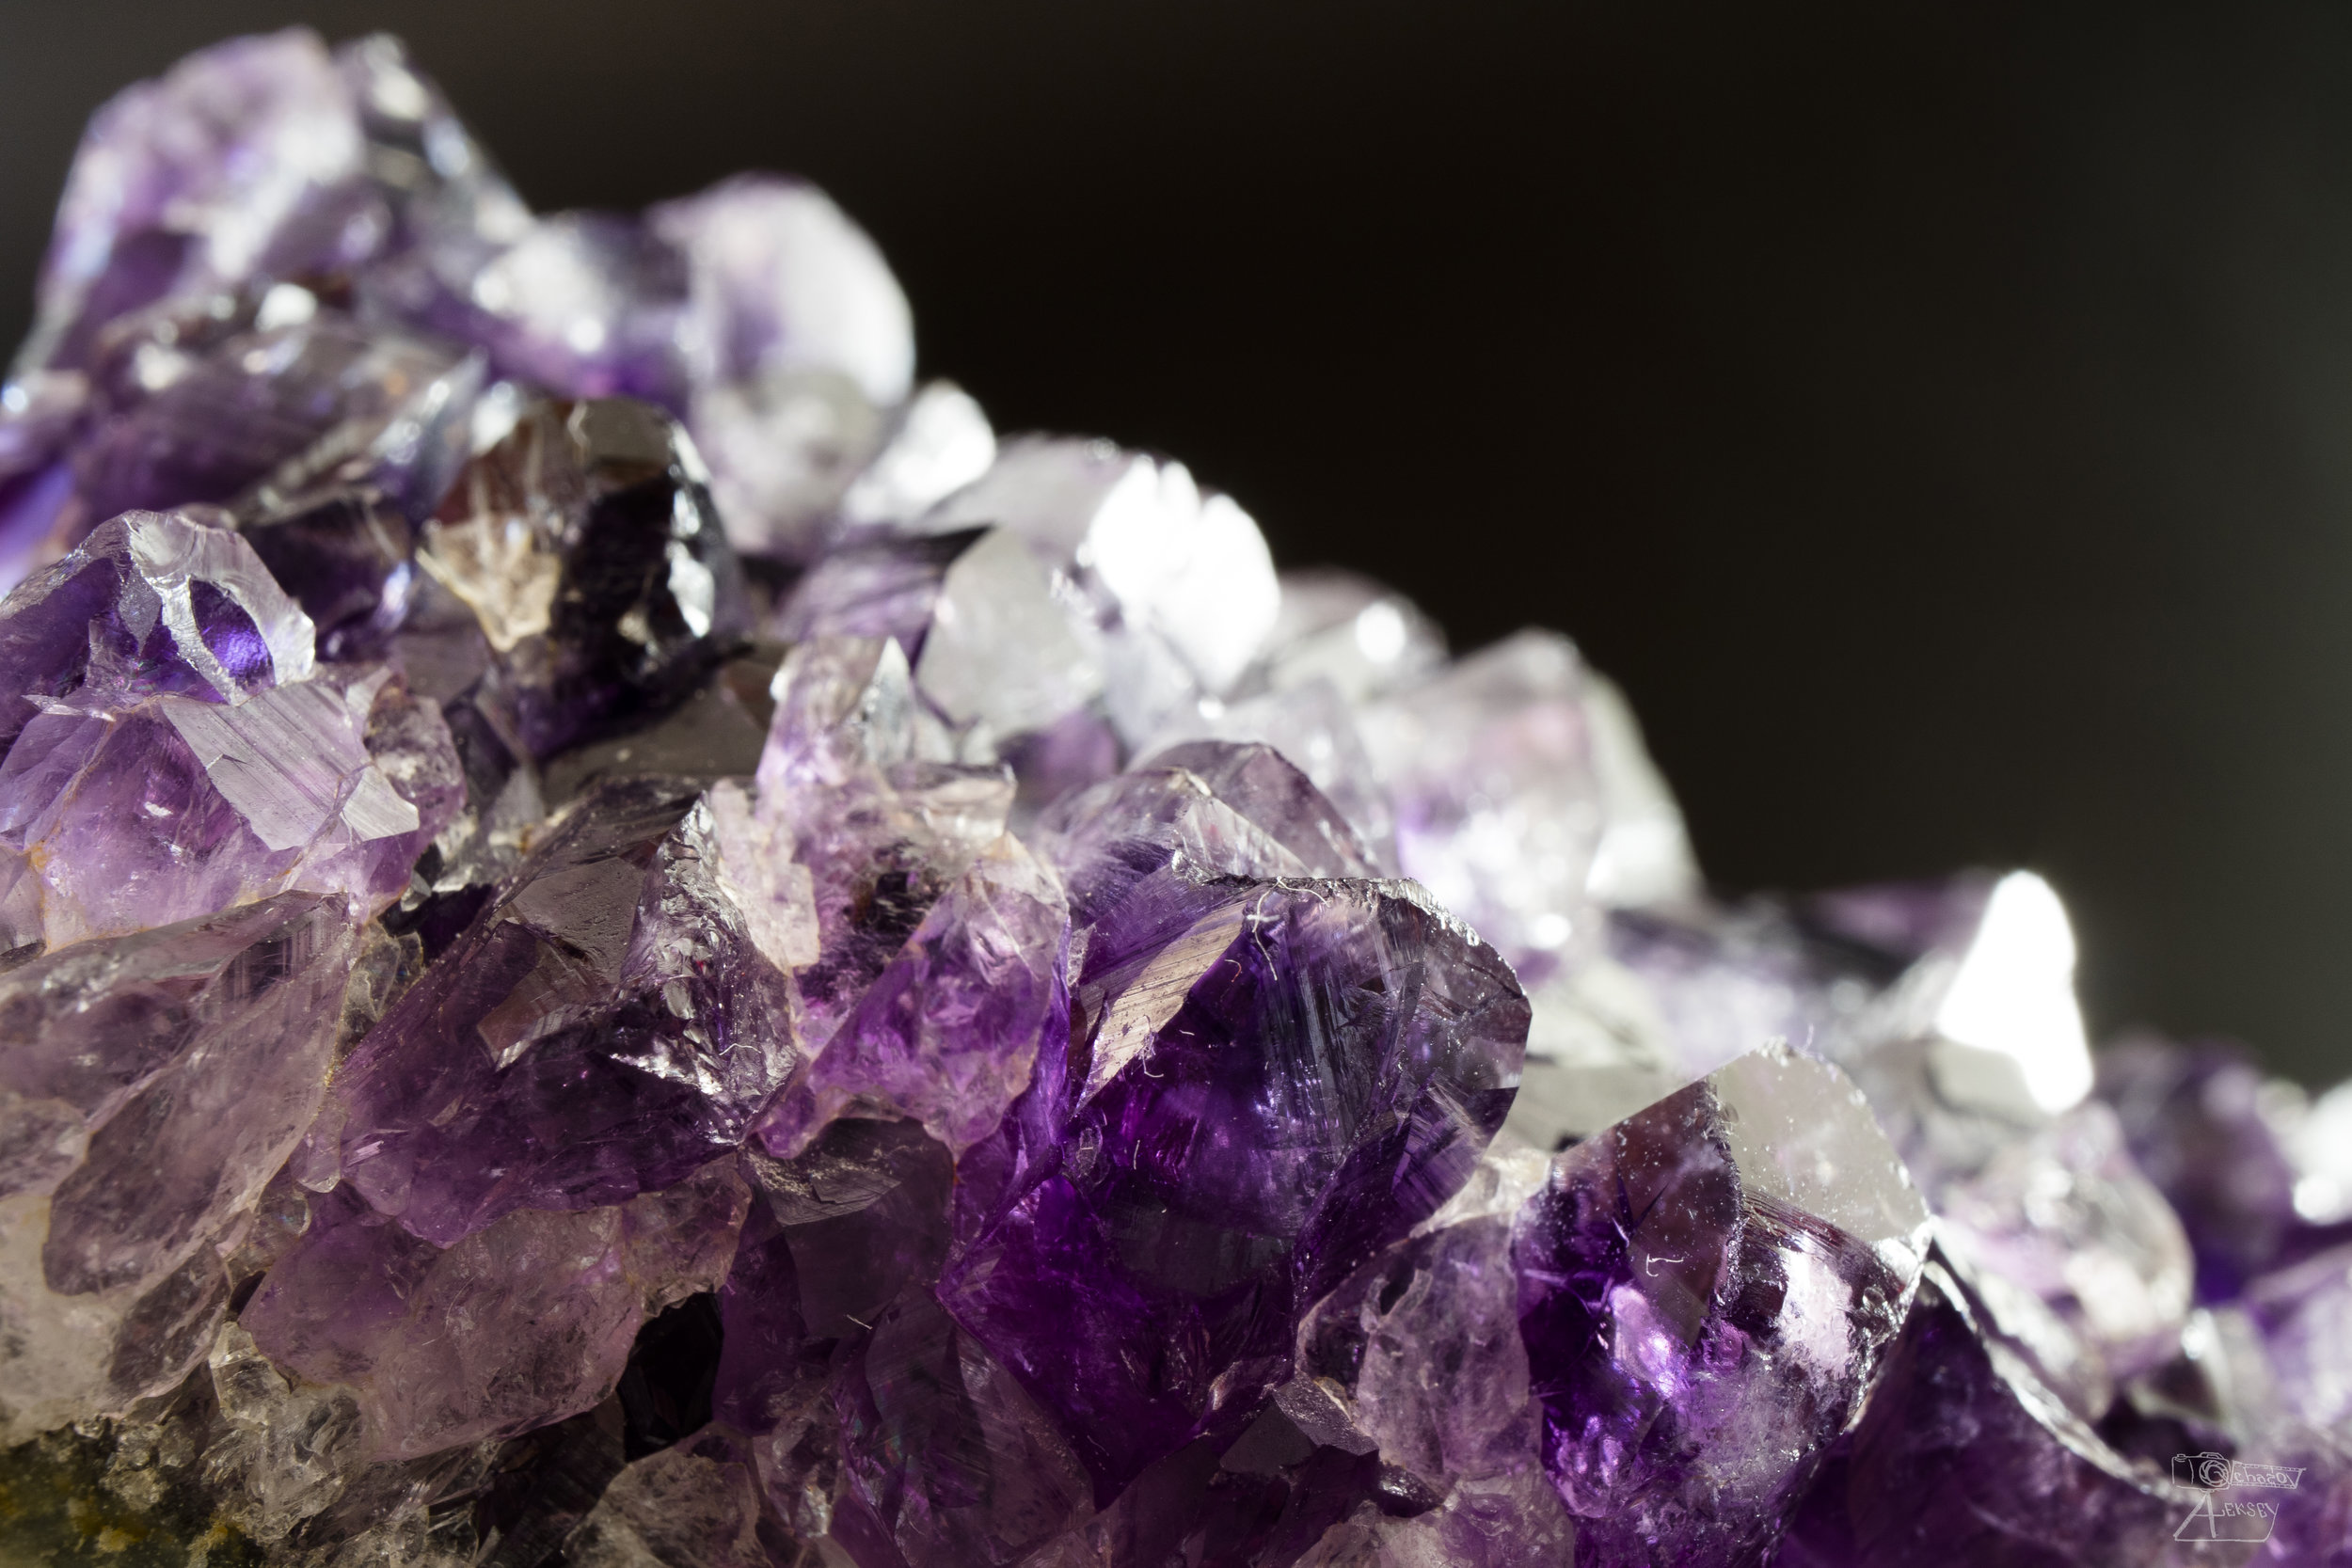 Put an amethyst under your pillow for good dreams - The amethyst is said to be a one of the strongest healing stone, enhancing your intuition and balancing the emotions.